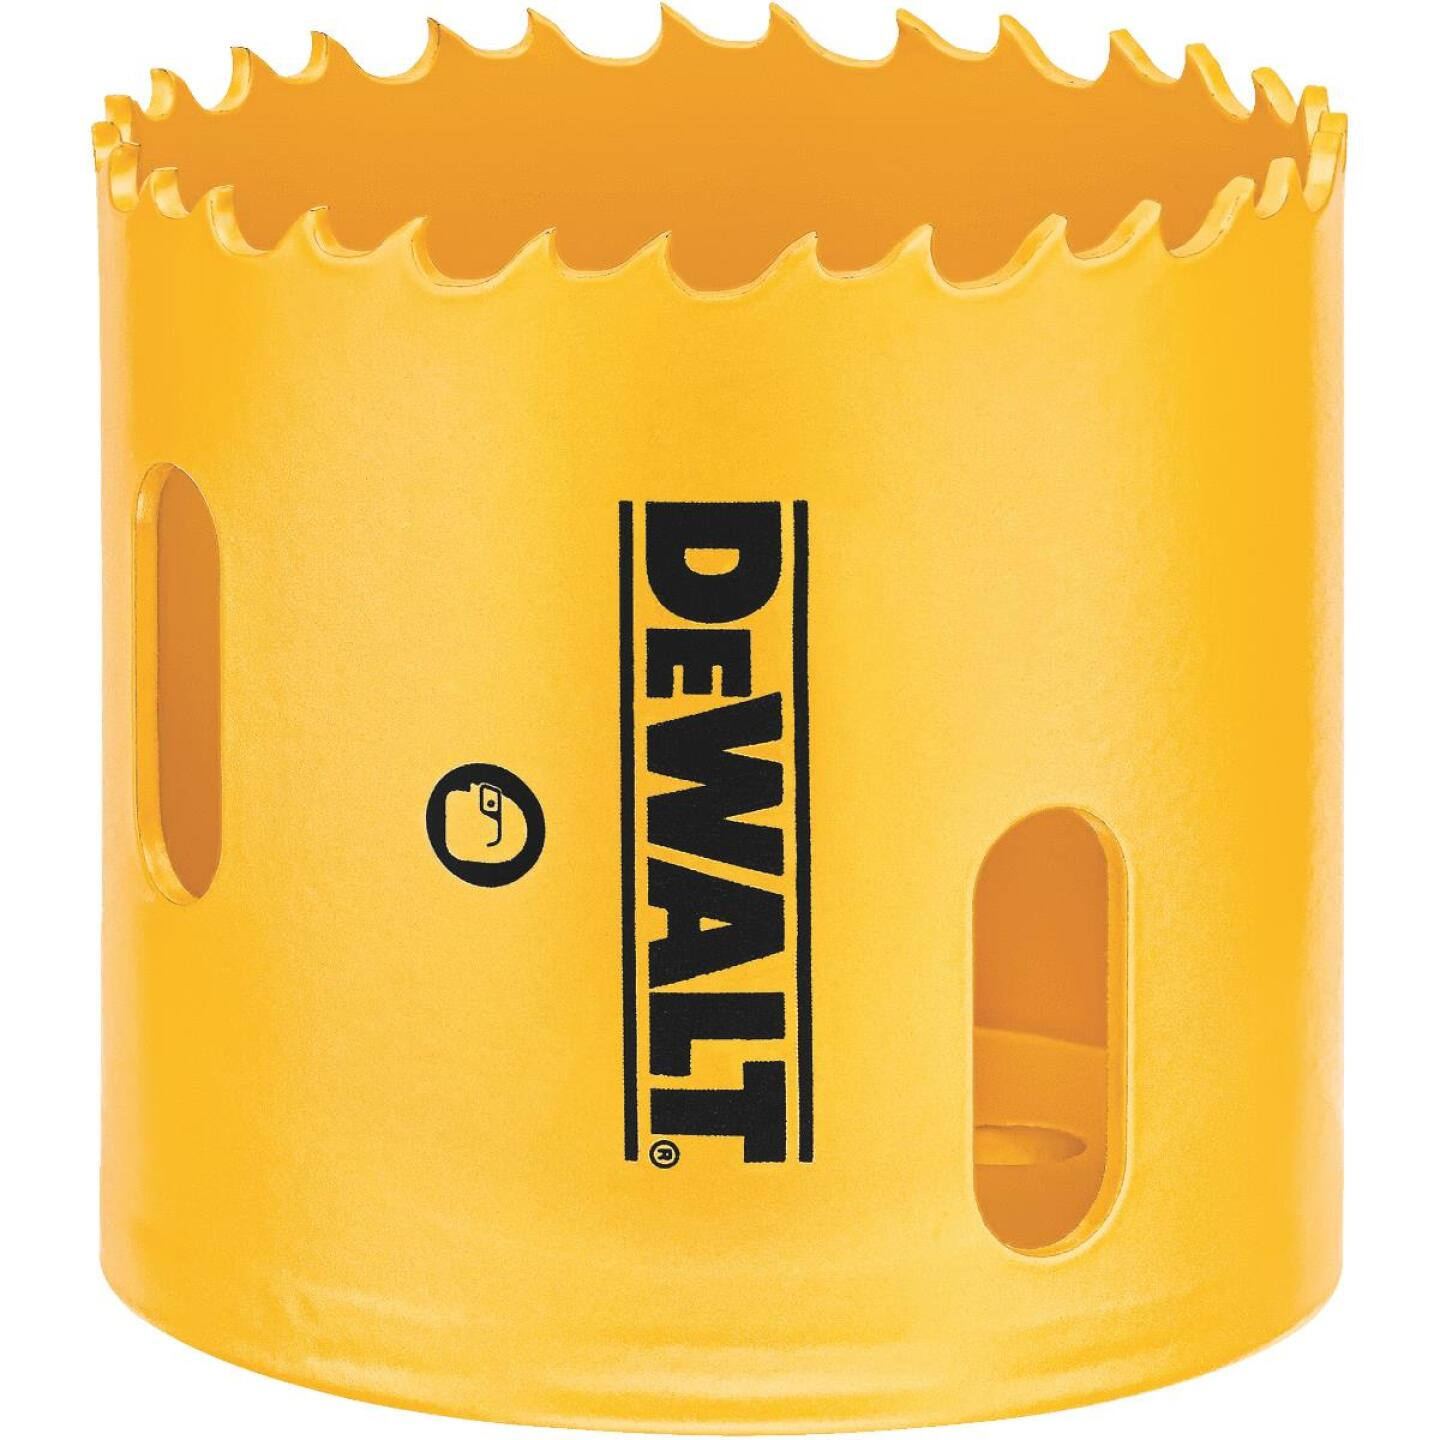 DeWalt 3 In. Bi-Metal Hole Saw Image 1